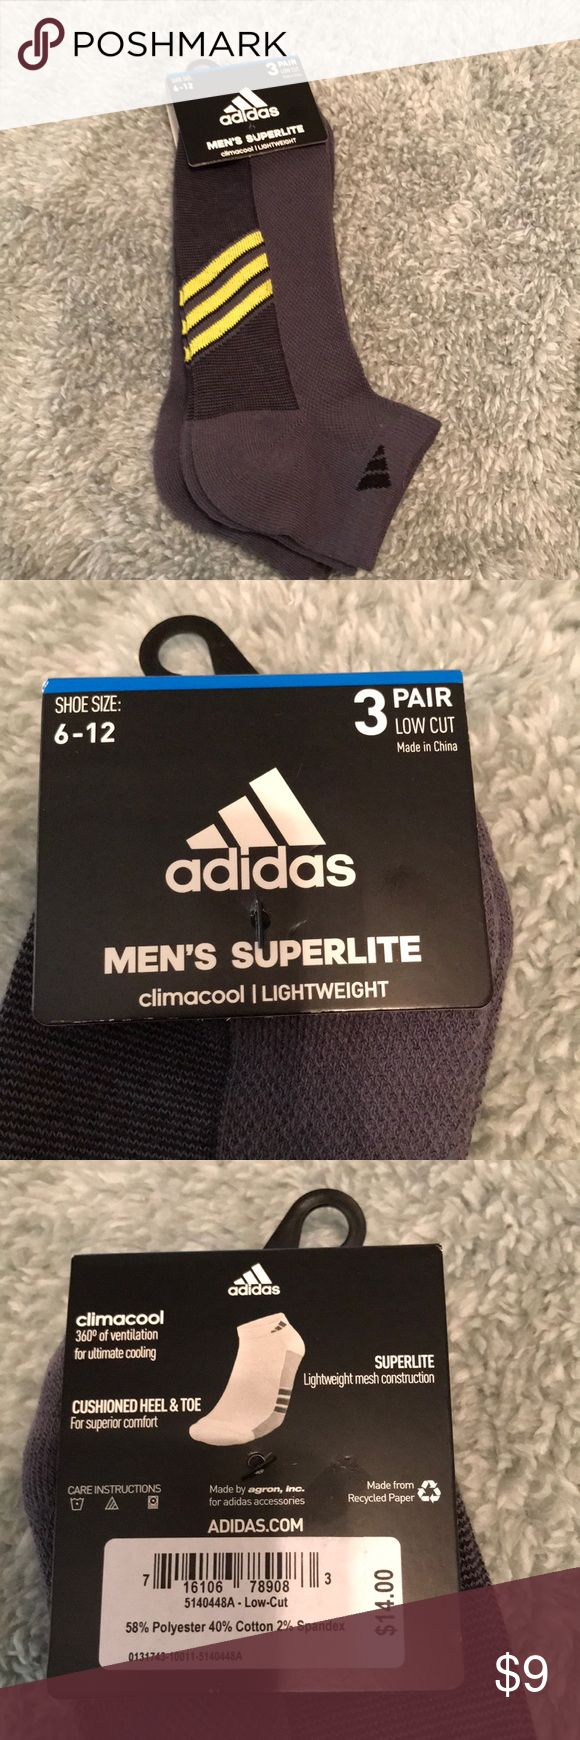 NWT Adidas men's super lite socks Excellent shape and never worn Adidas men's super lite socks. 3 pair in the bundle. 2 have the yellow stripes on the bottom with black Adidas emblem on the side. Ankle cut. Non smoking home adidas Underwear & Socks Athletic Socks